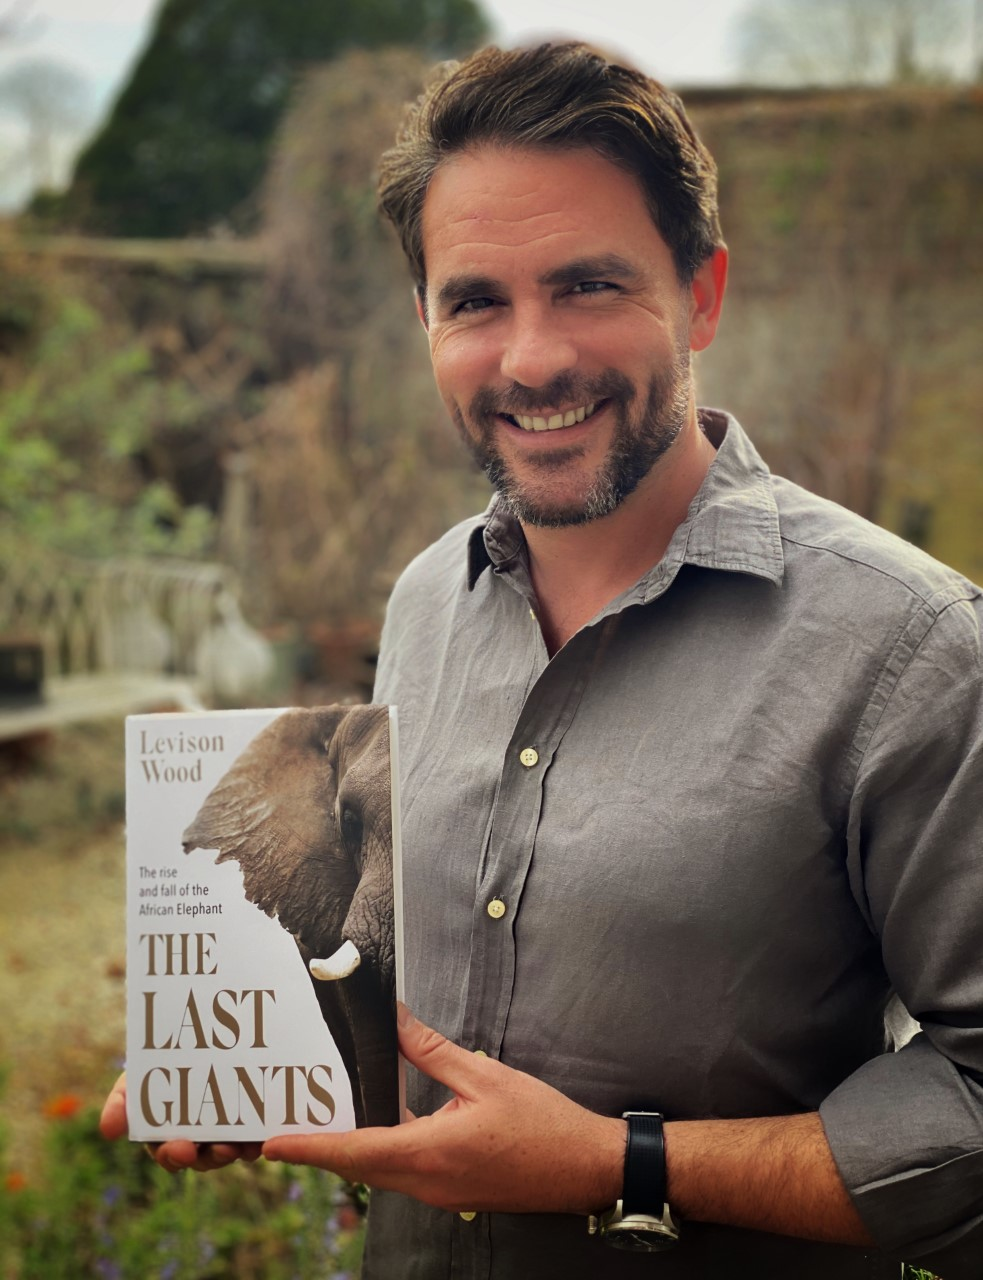 Signed Copy of Book: 'The Last Giants' by Levison Wood